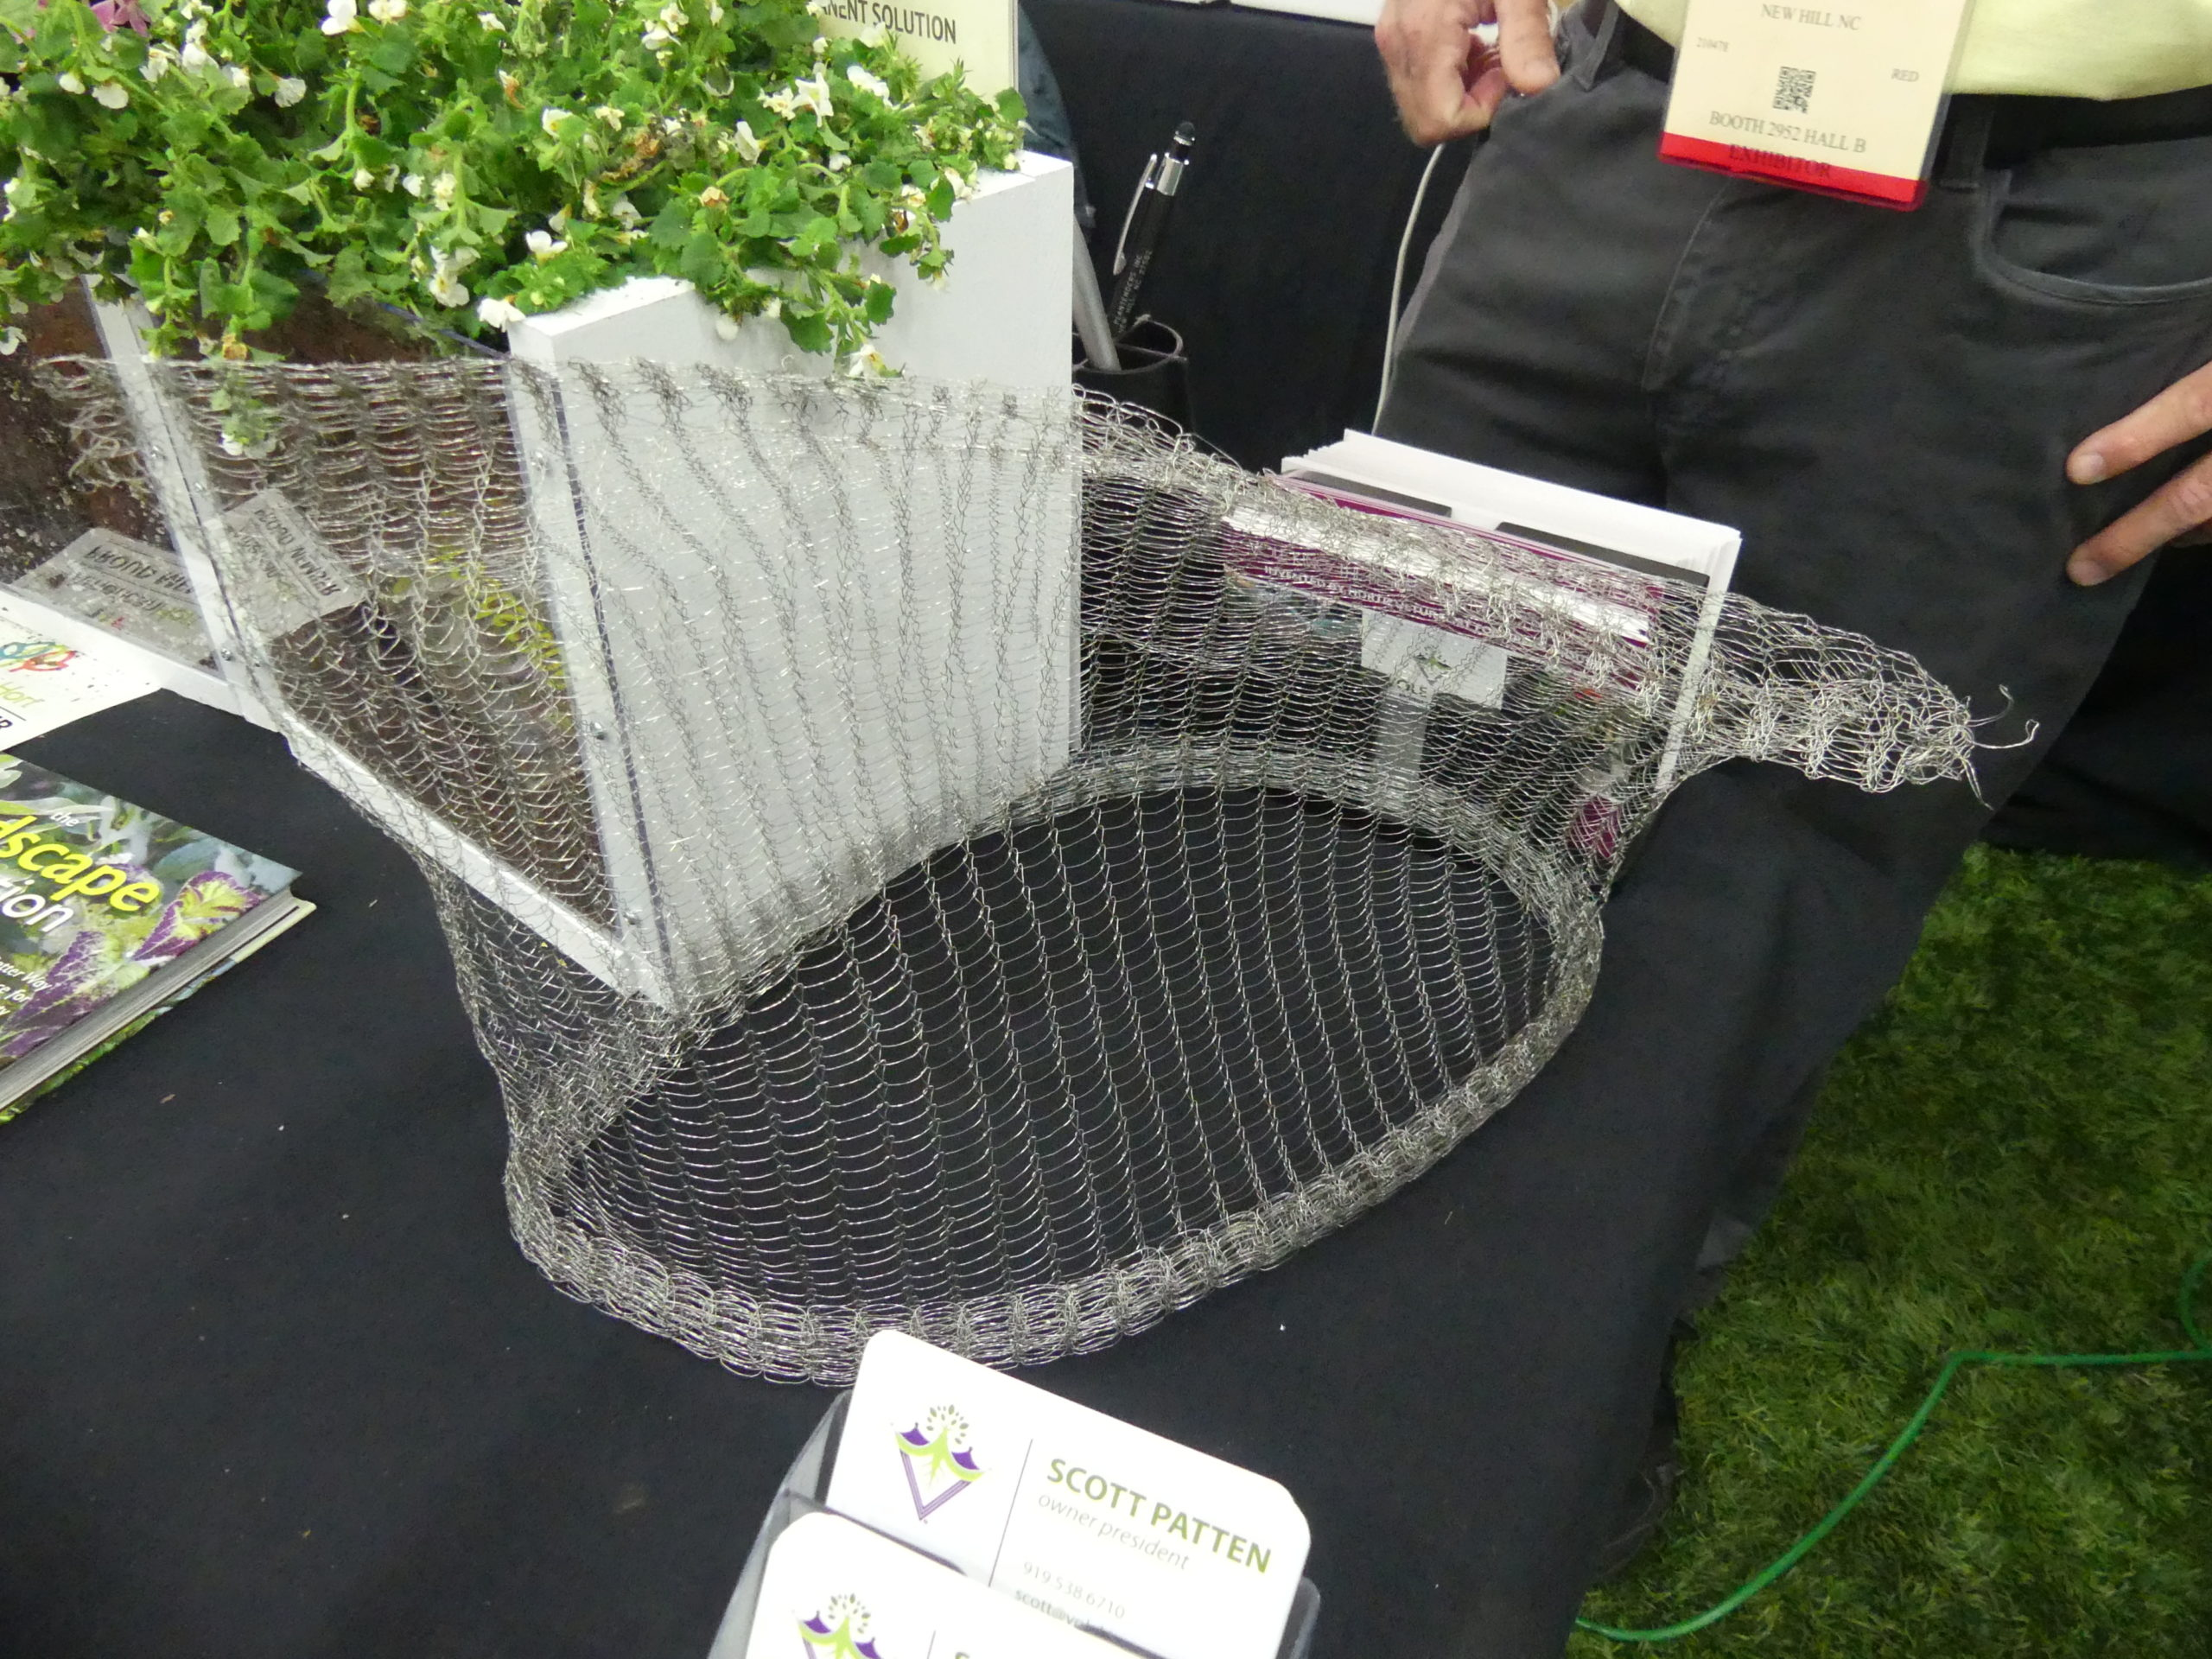 Vole King is a stainless steel mesh product that can protect your roots and bulbs from marauding voles and squirrels. It's available on rolls or as bags in several sizes.